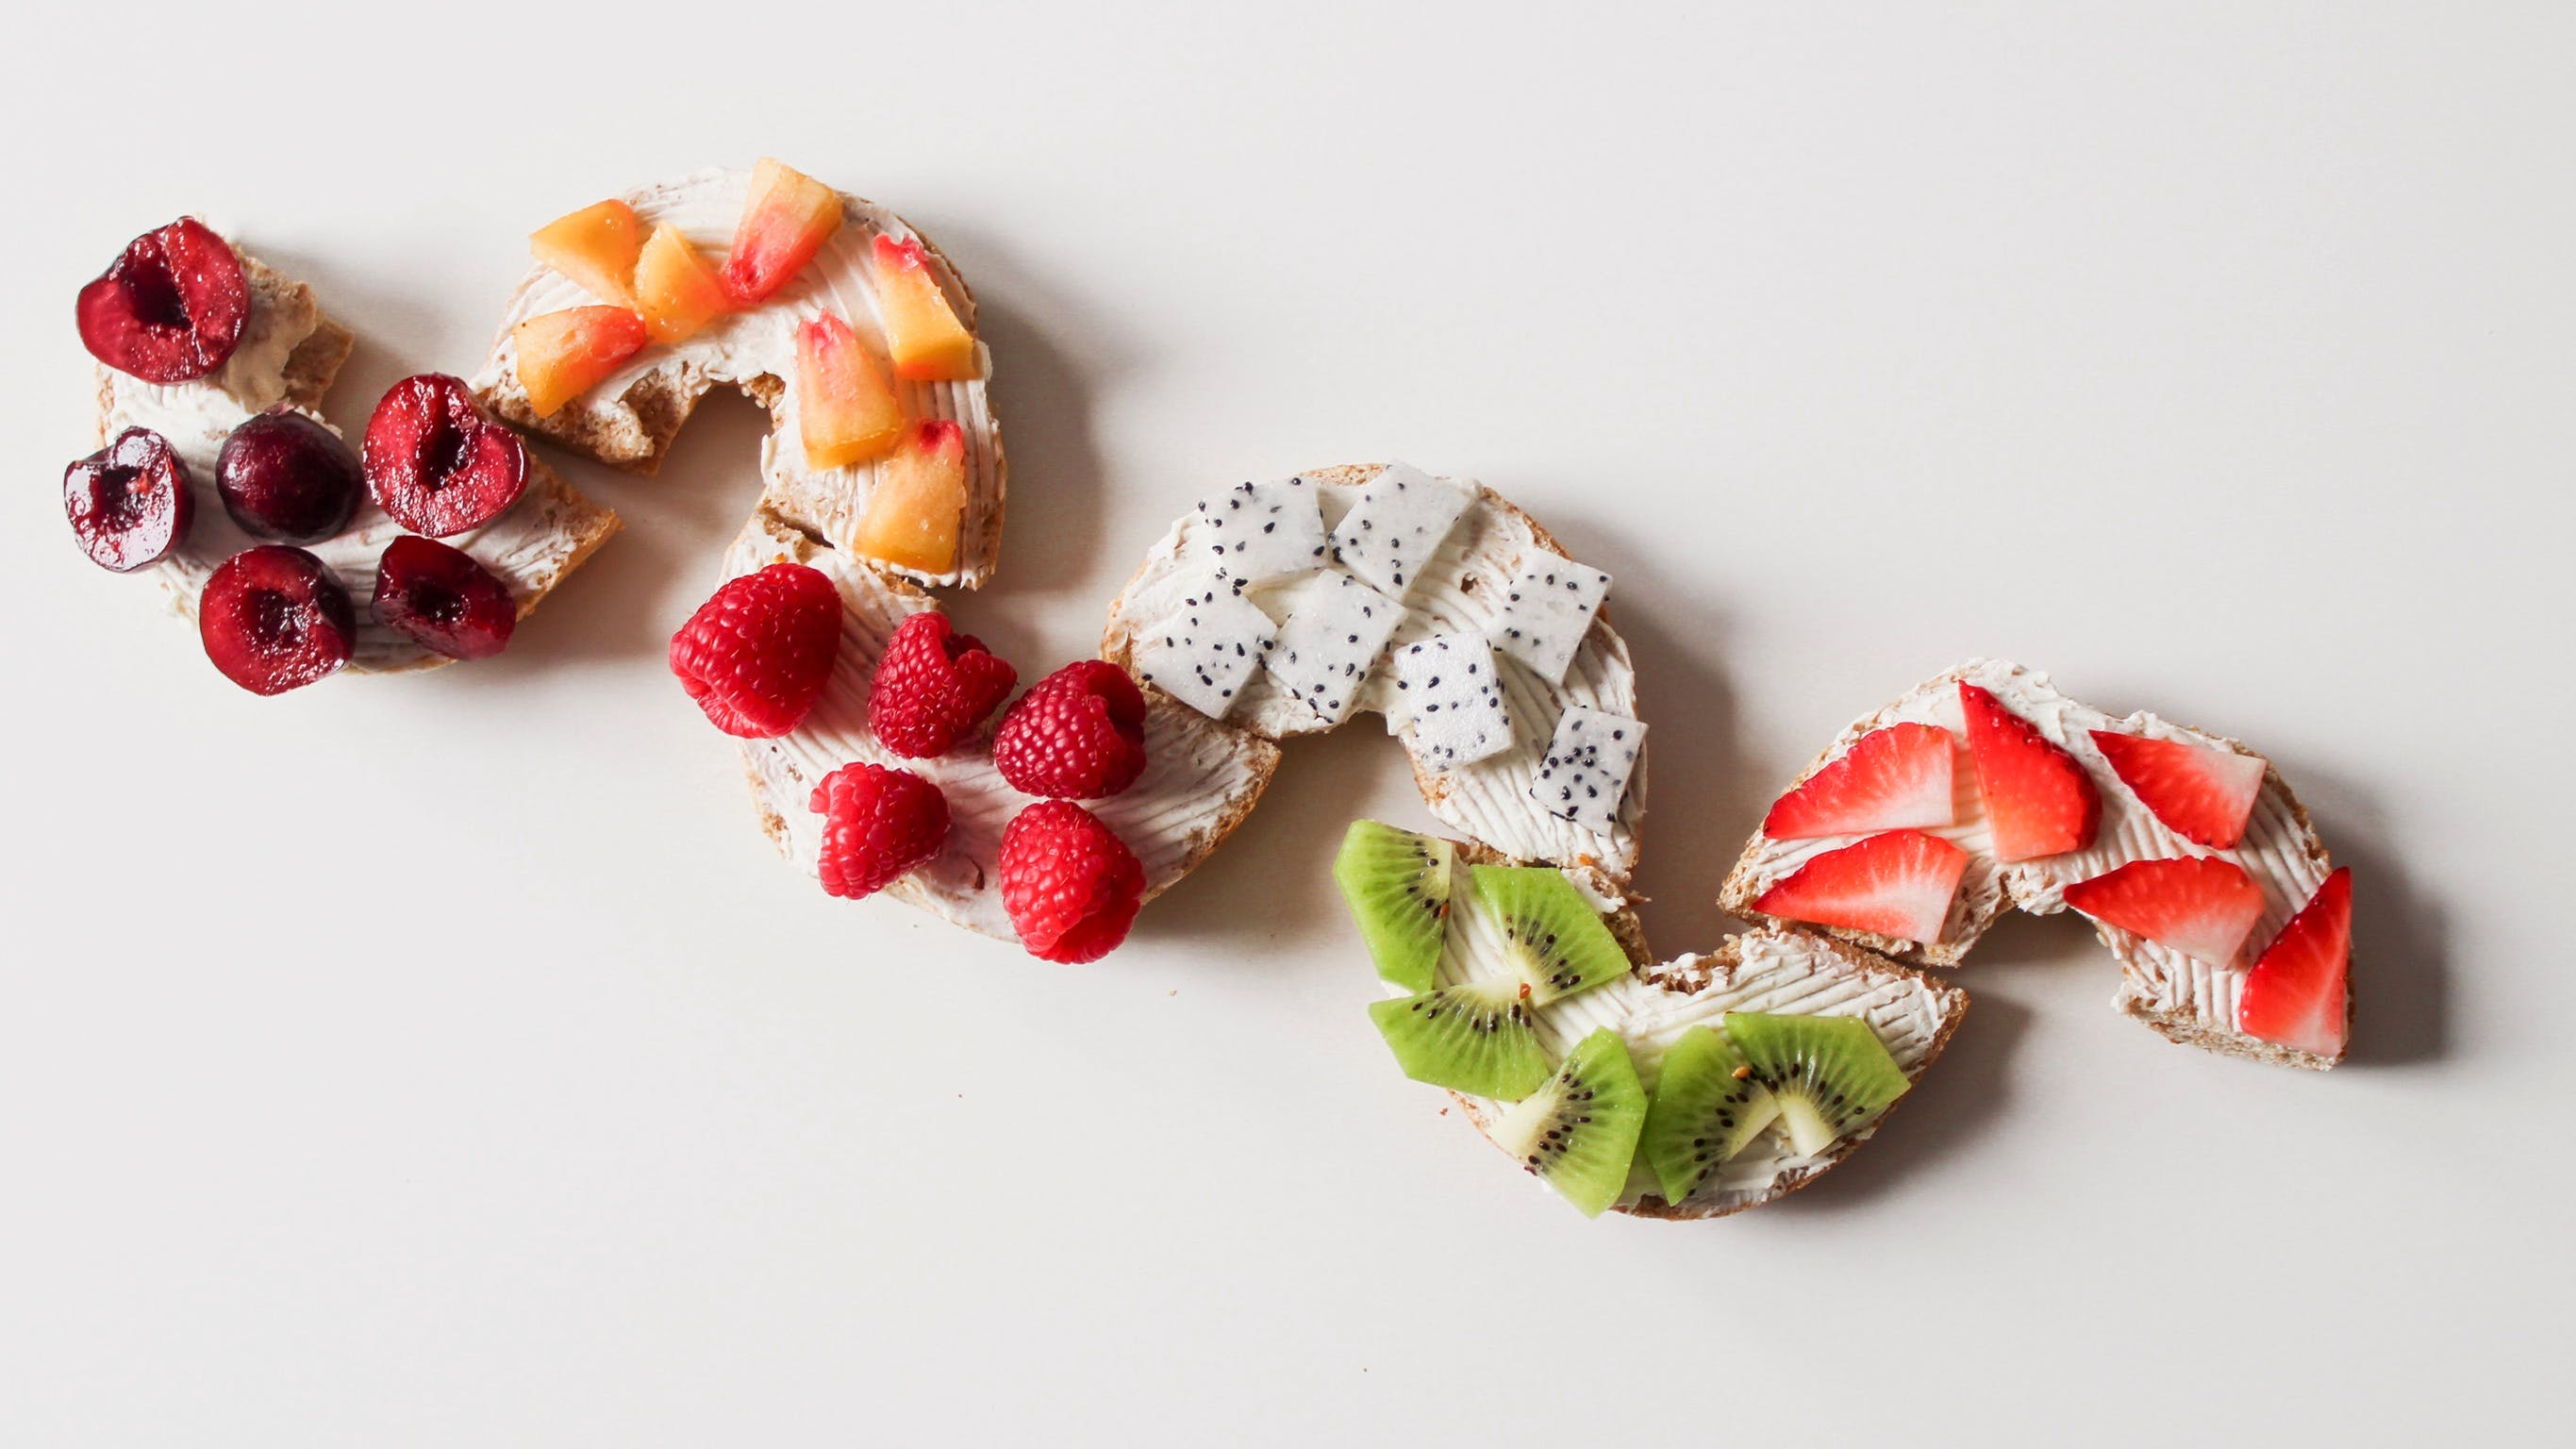 Assorted Sliced Fruit Lot on White Surface